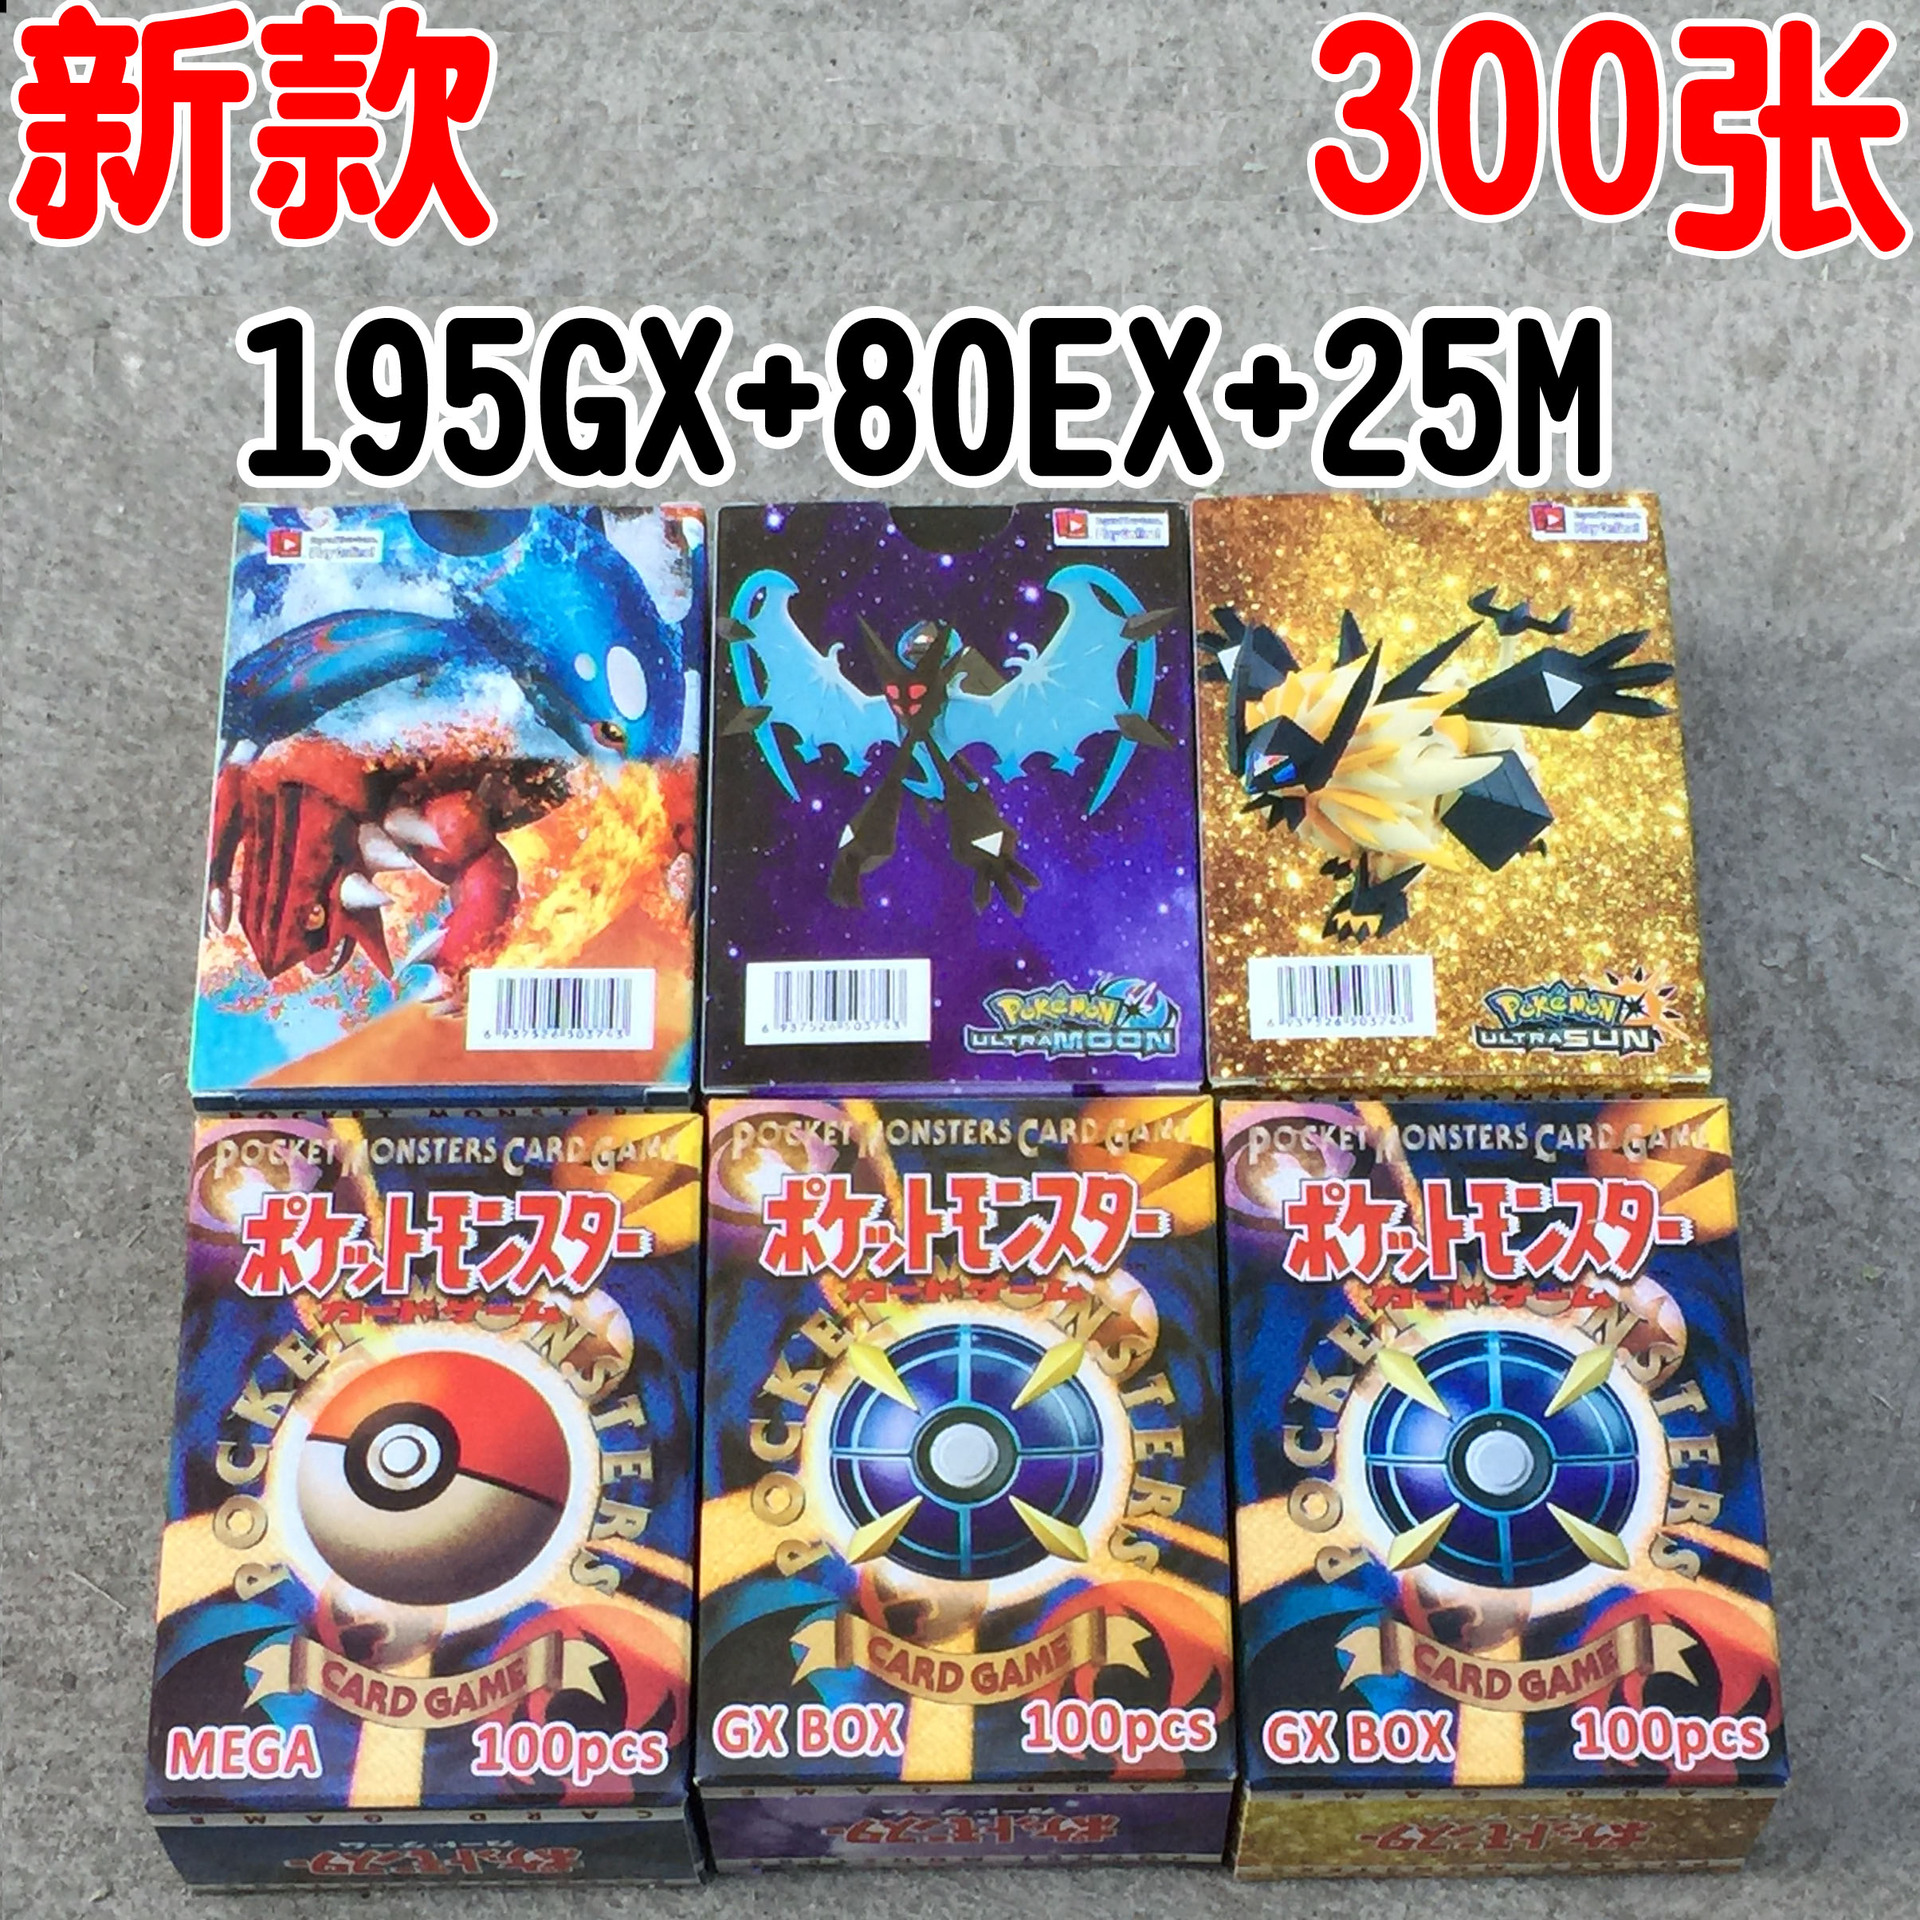 300 Pcs Pokemon Flash Cards  Original 1996 Years Charizard Blastoise Venusaur Mewtwo  Toys Of  Childrens